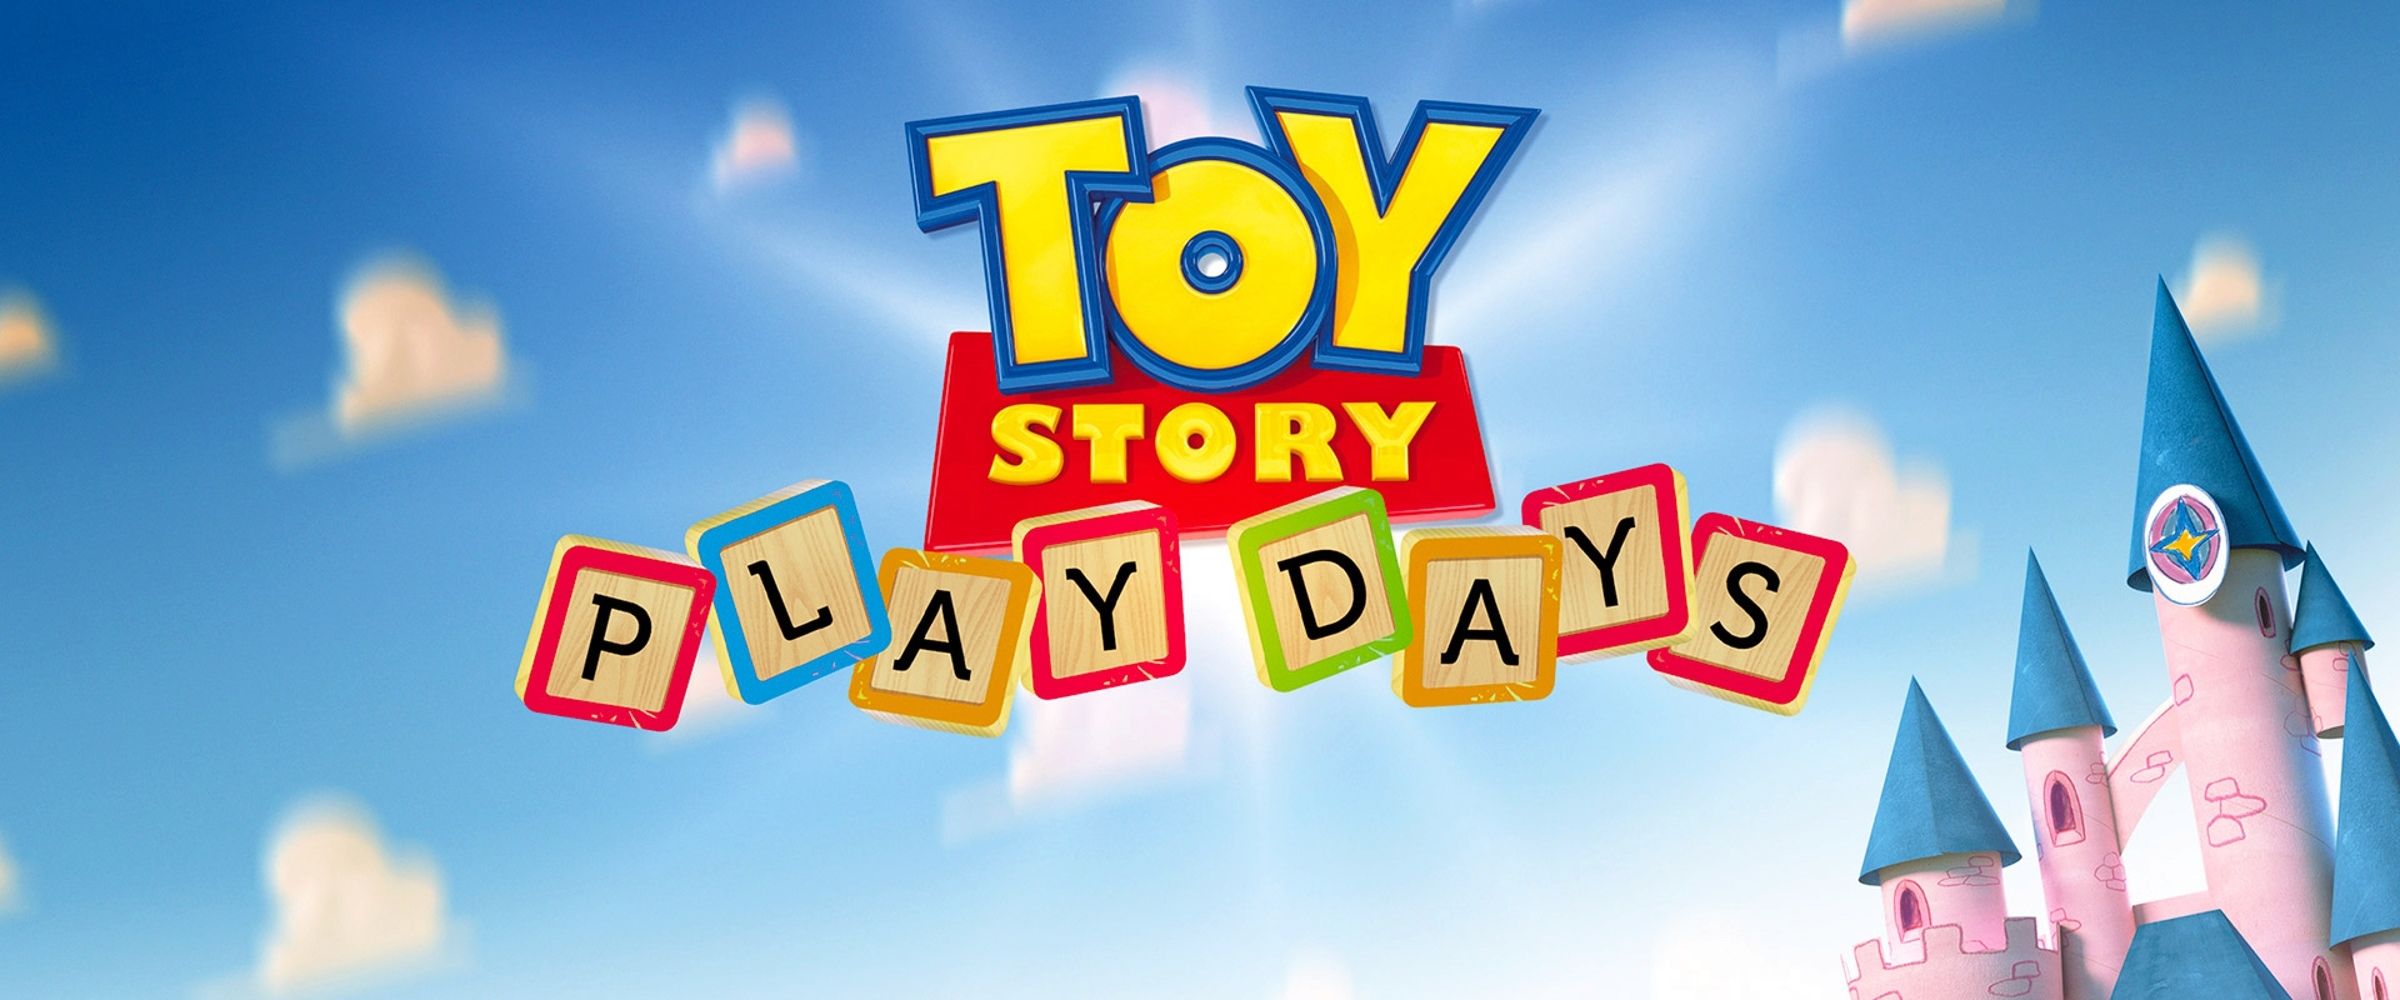 2019 - Toy Story Play Days Hd146610